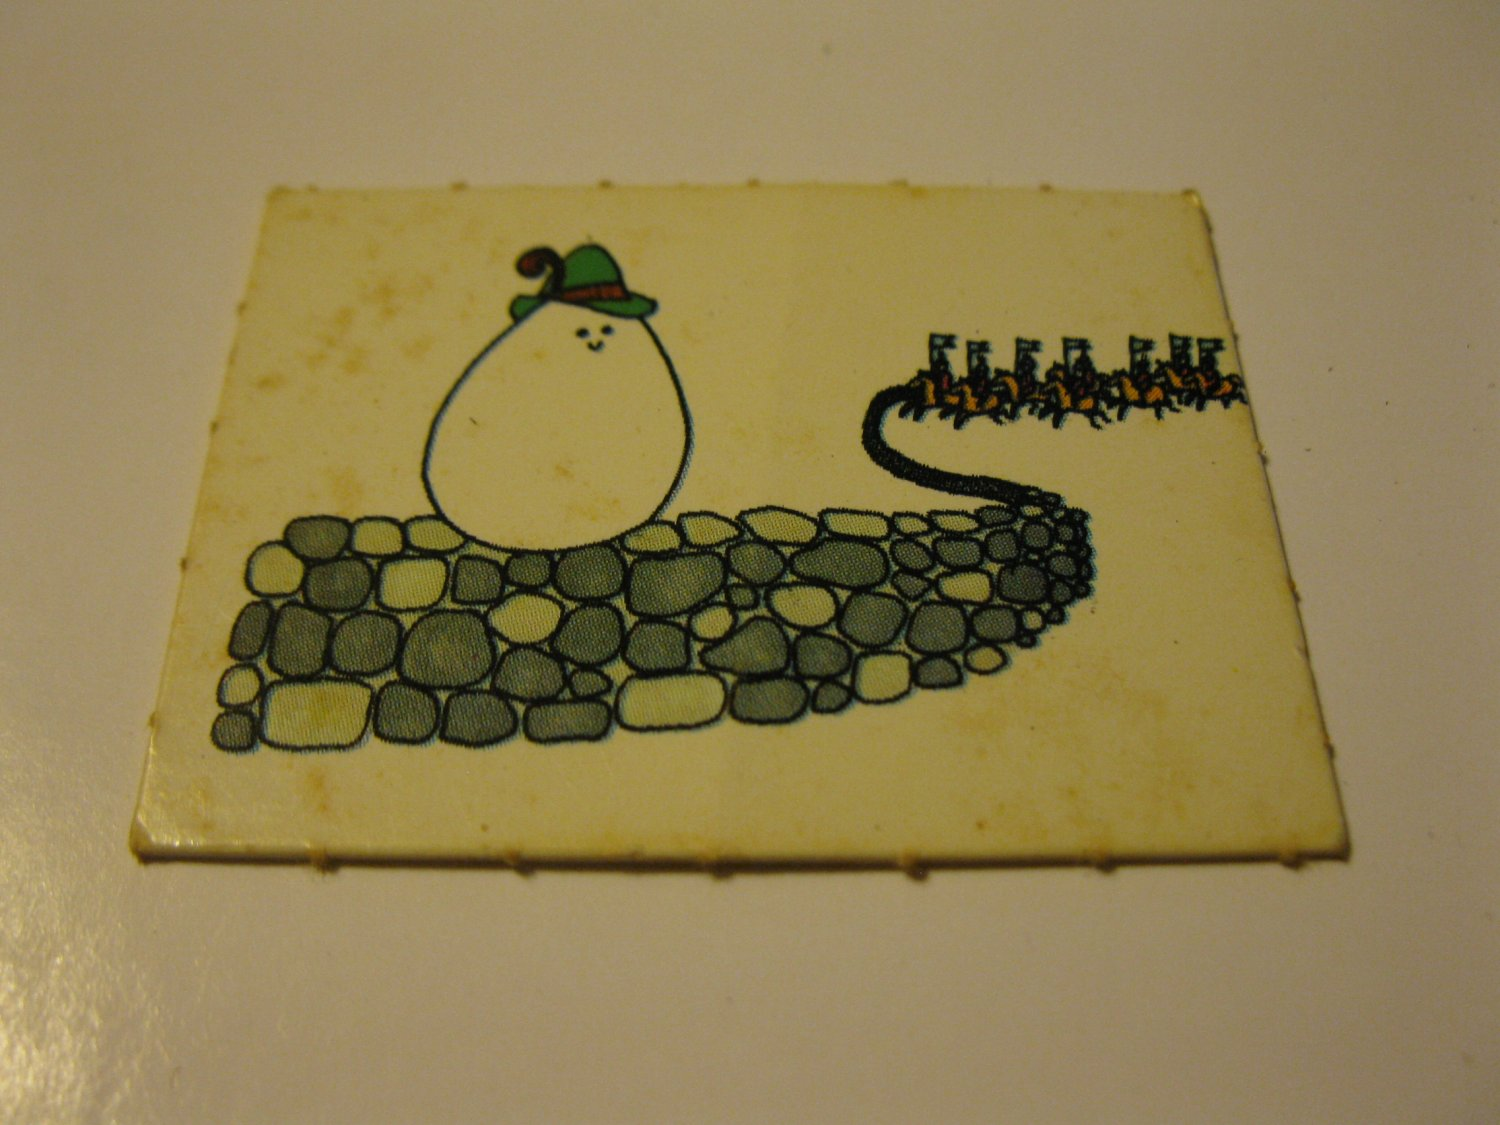 1971 Mother Goose Board Game Piece: Game card #6